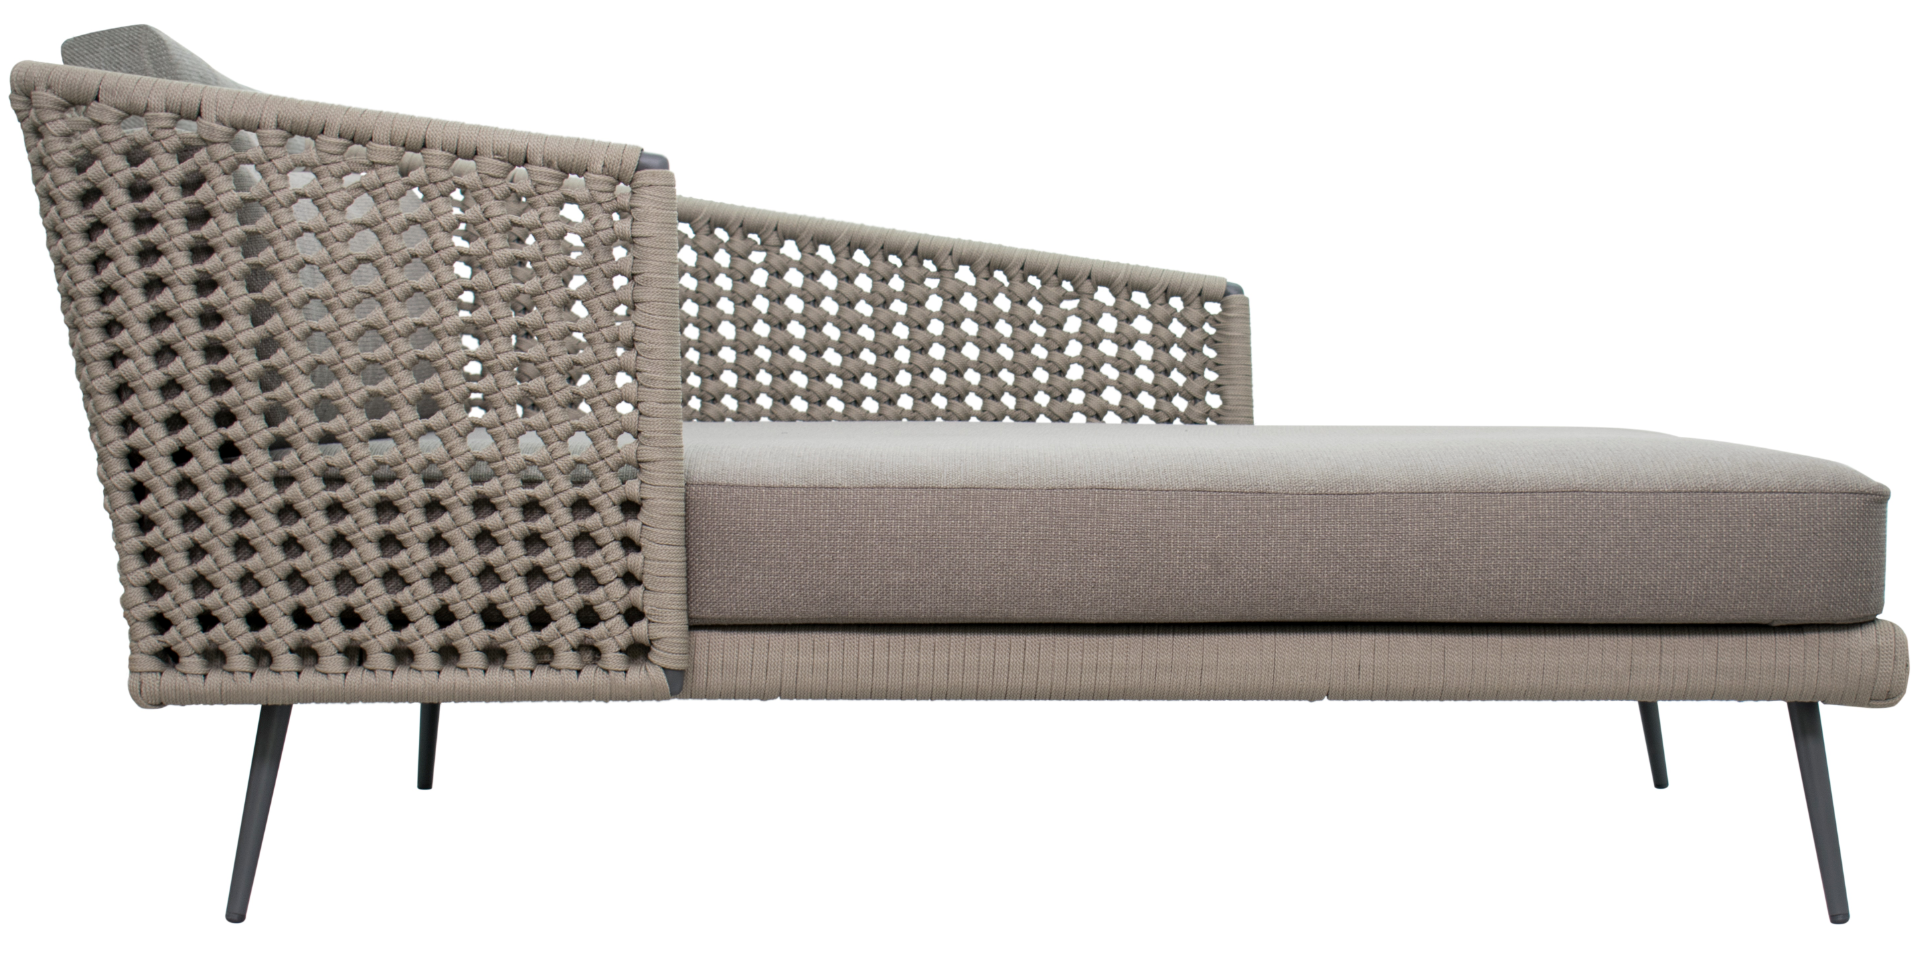 Seasonal Living Antilles DREAM Chaise from the Archipelago Collection